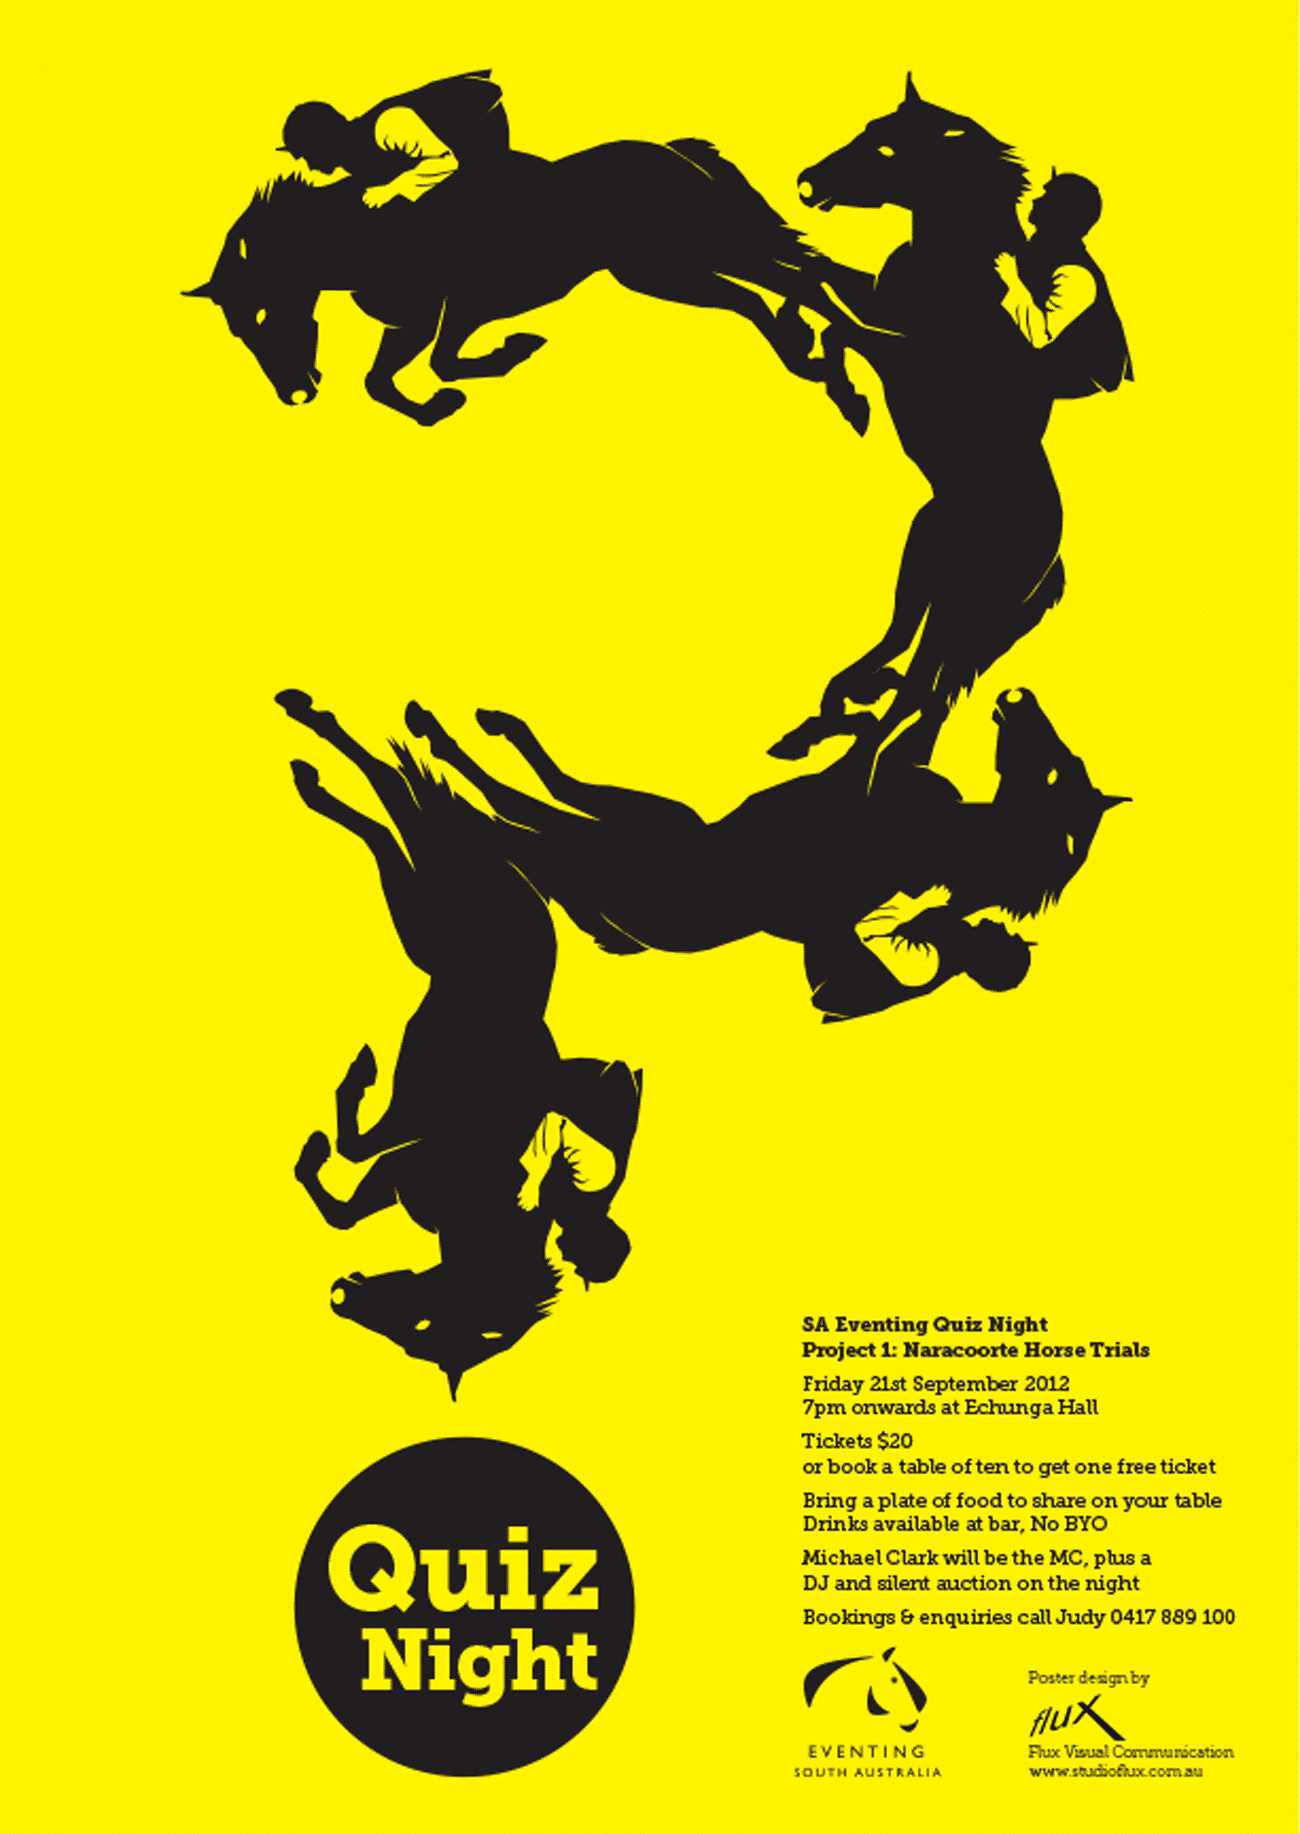 Adelaide Hills Quiz Night poster design by Flux Visual Communication